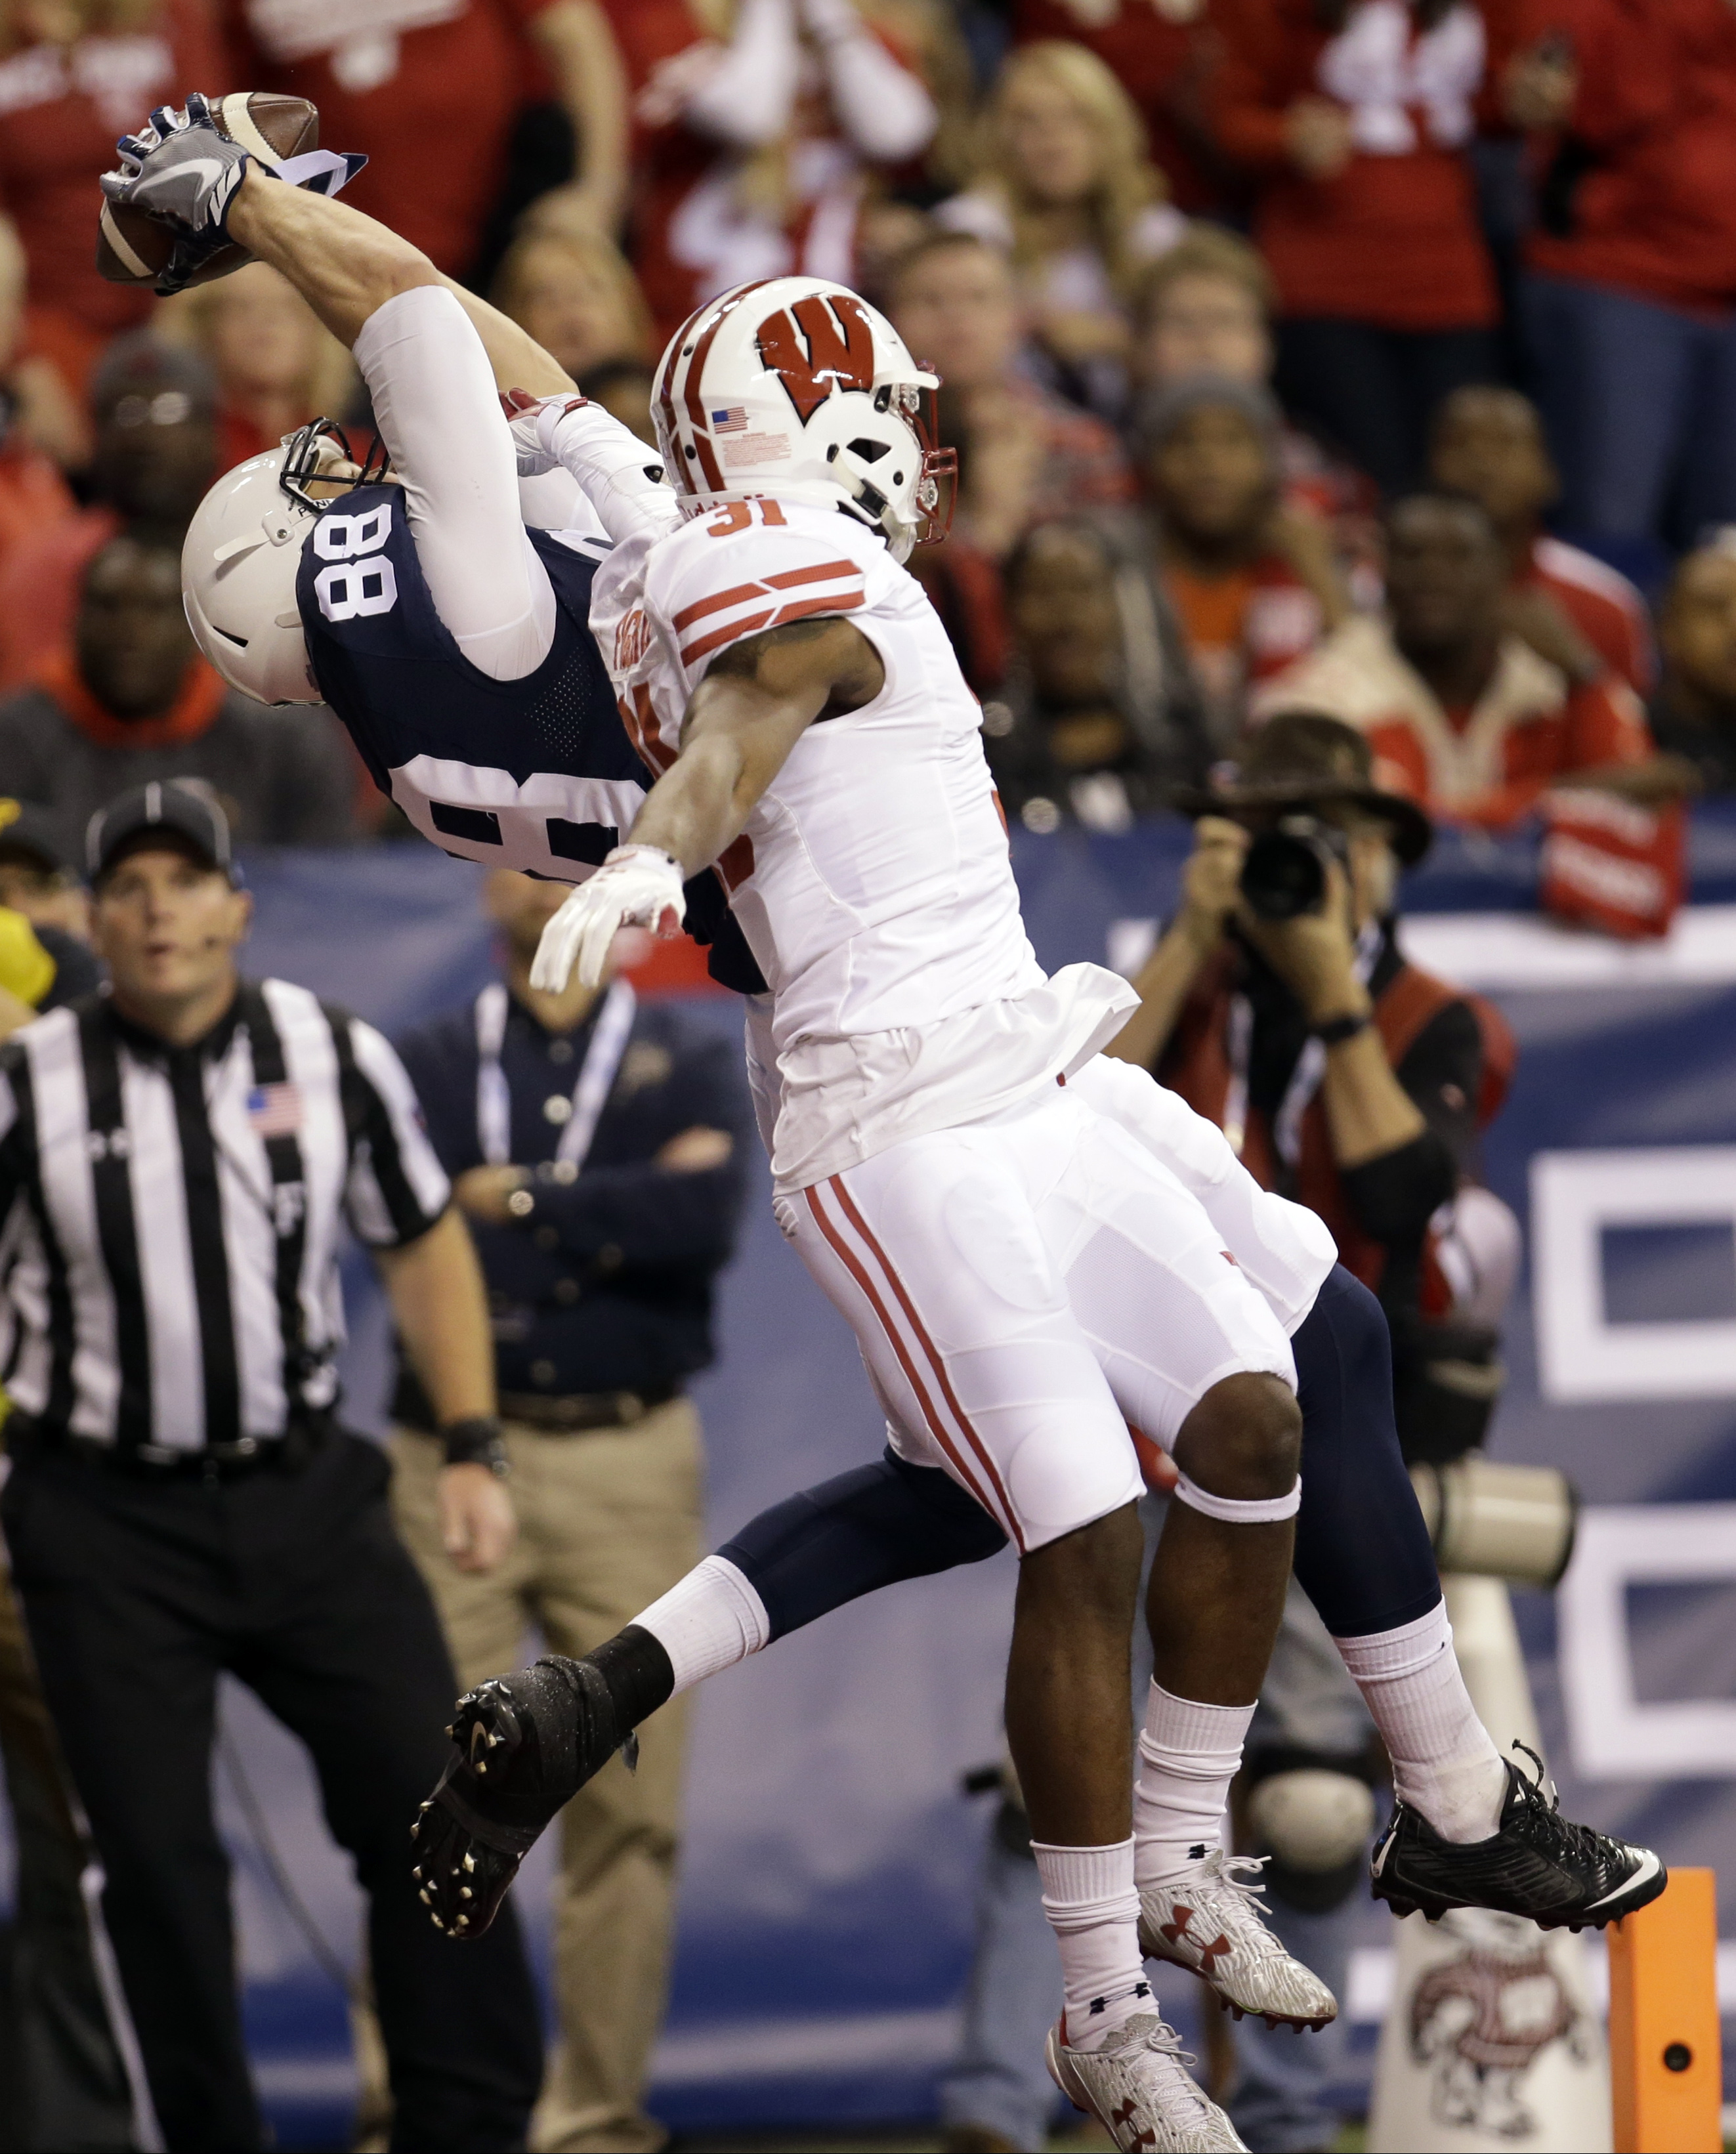 Penn State's Mike Gesicki (88) makes a 33-yard touchdown reception against Wisconsin's Lubern Figaro (31) during the first half of the Big Ten championship NCAA college football game Saturday, Dec. 3, 2016, in Indianapolis. (AP Photo/AJ Mast)